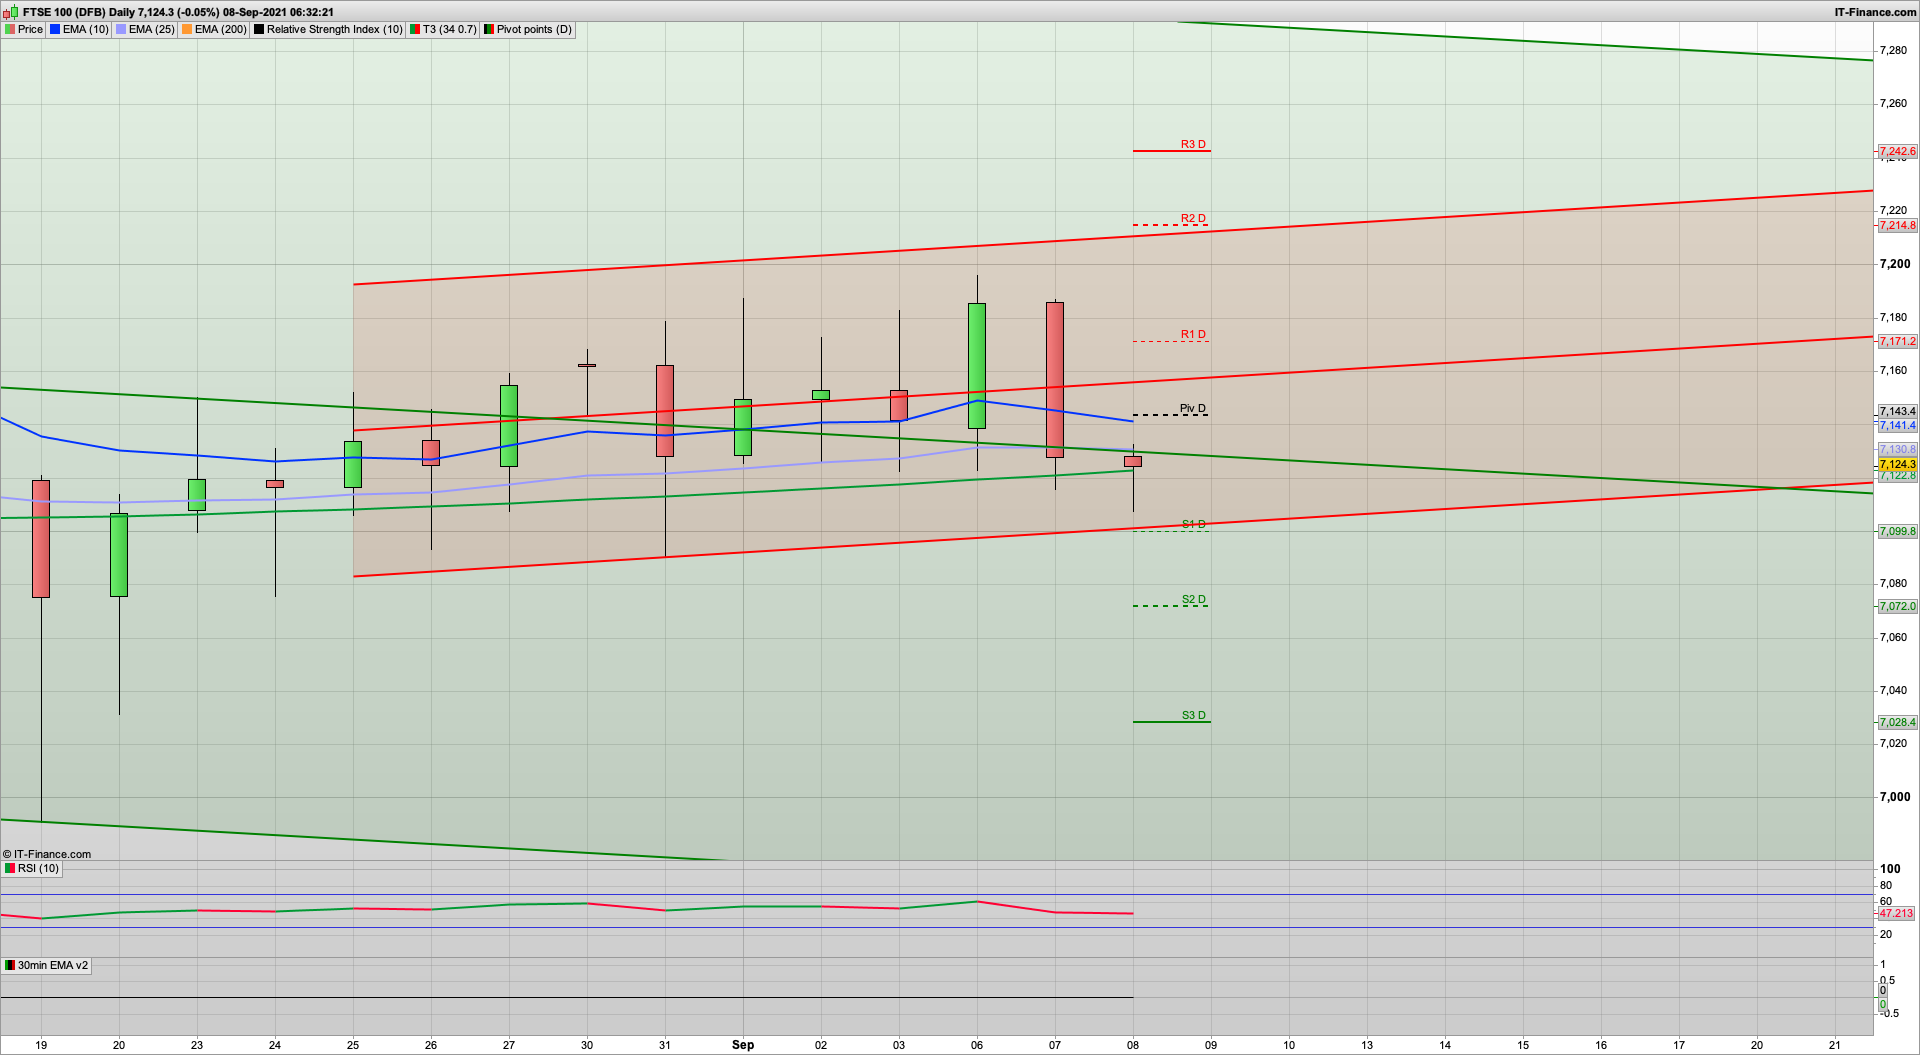 Dip and rise again   Watching for supports at 7110 and 7070   7145 7187 resistance